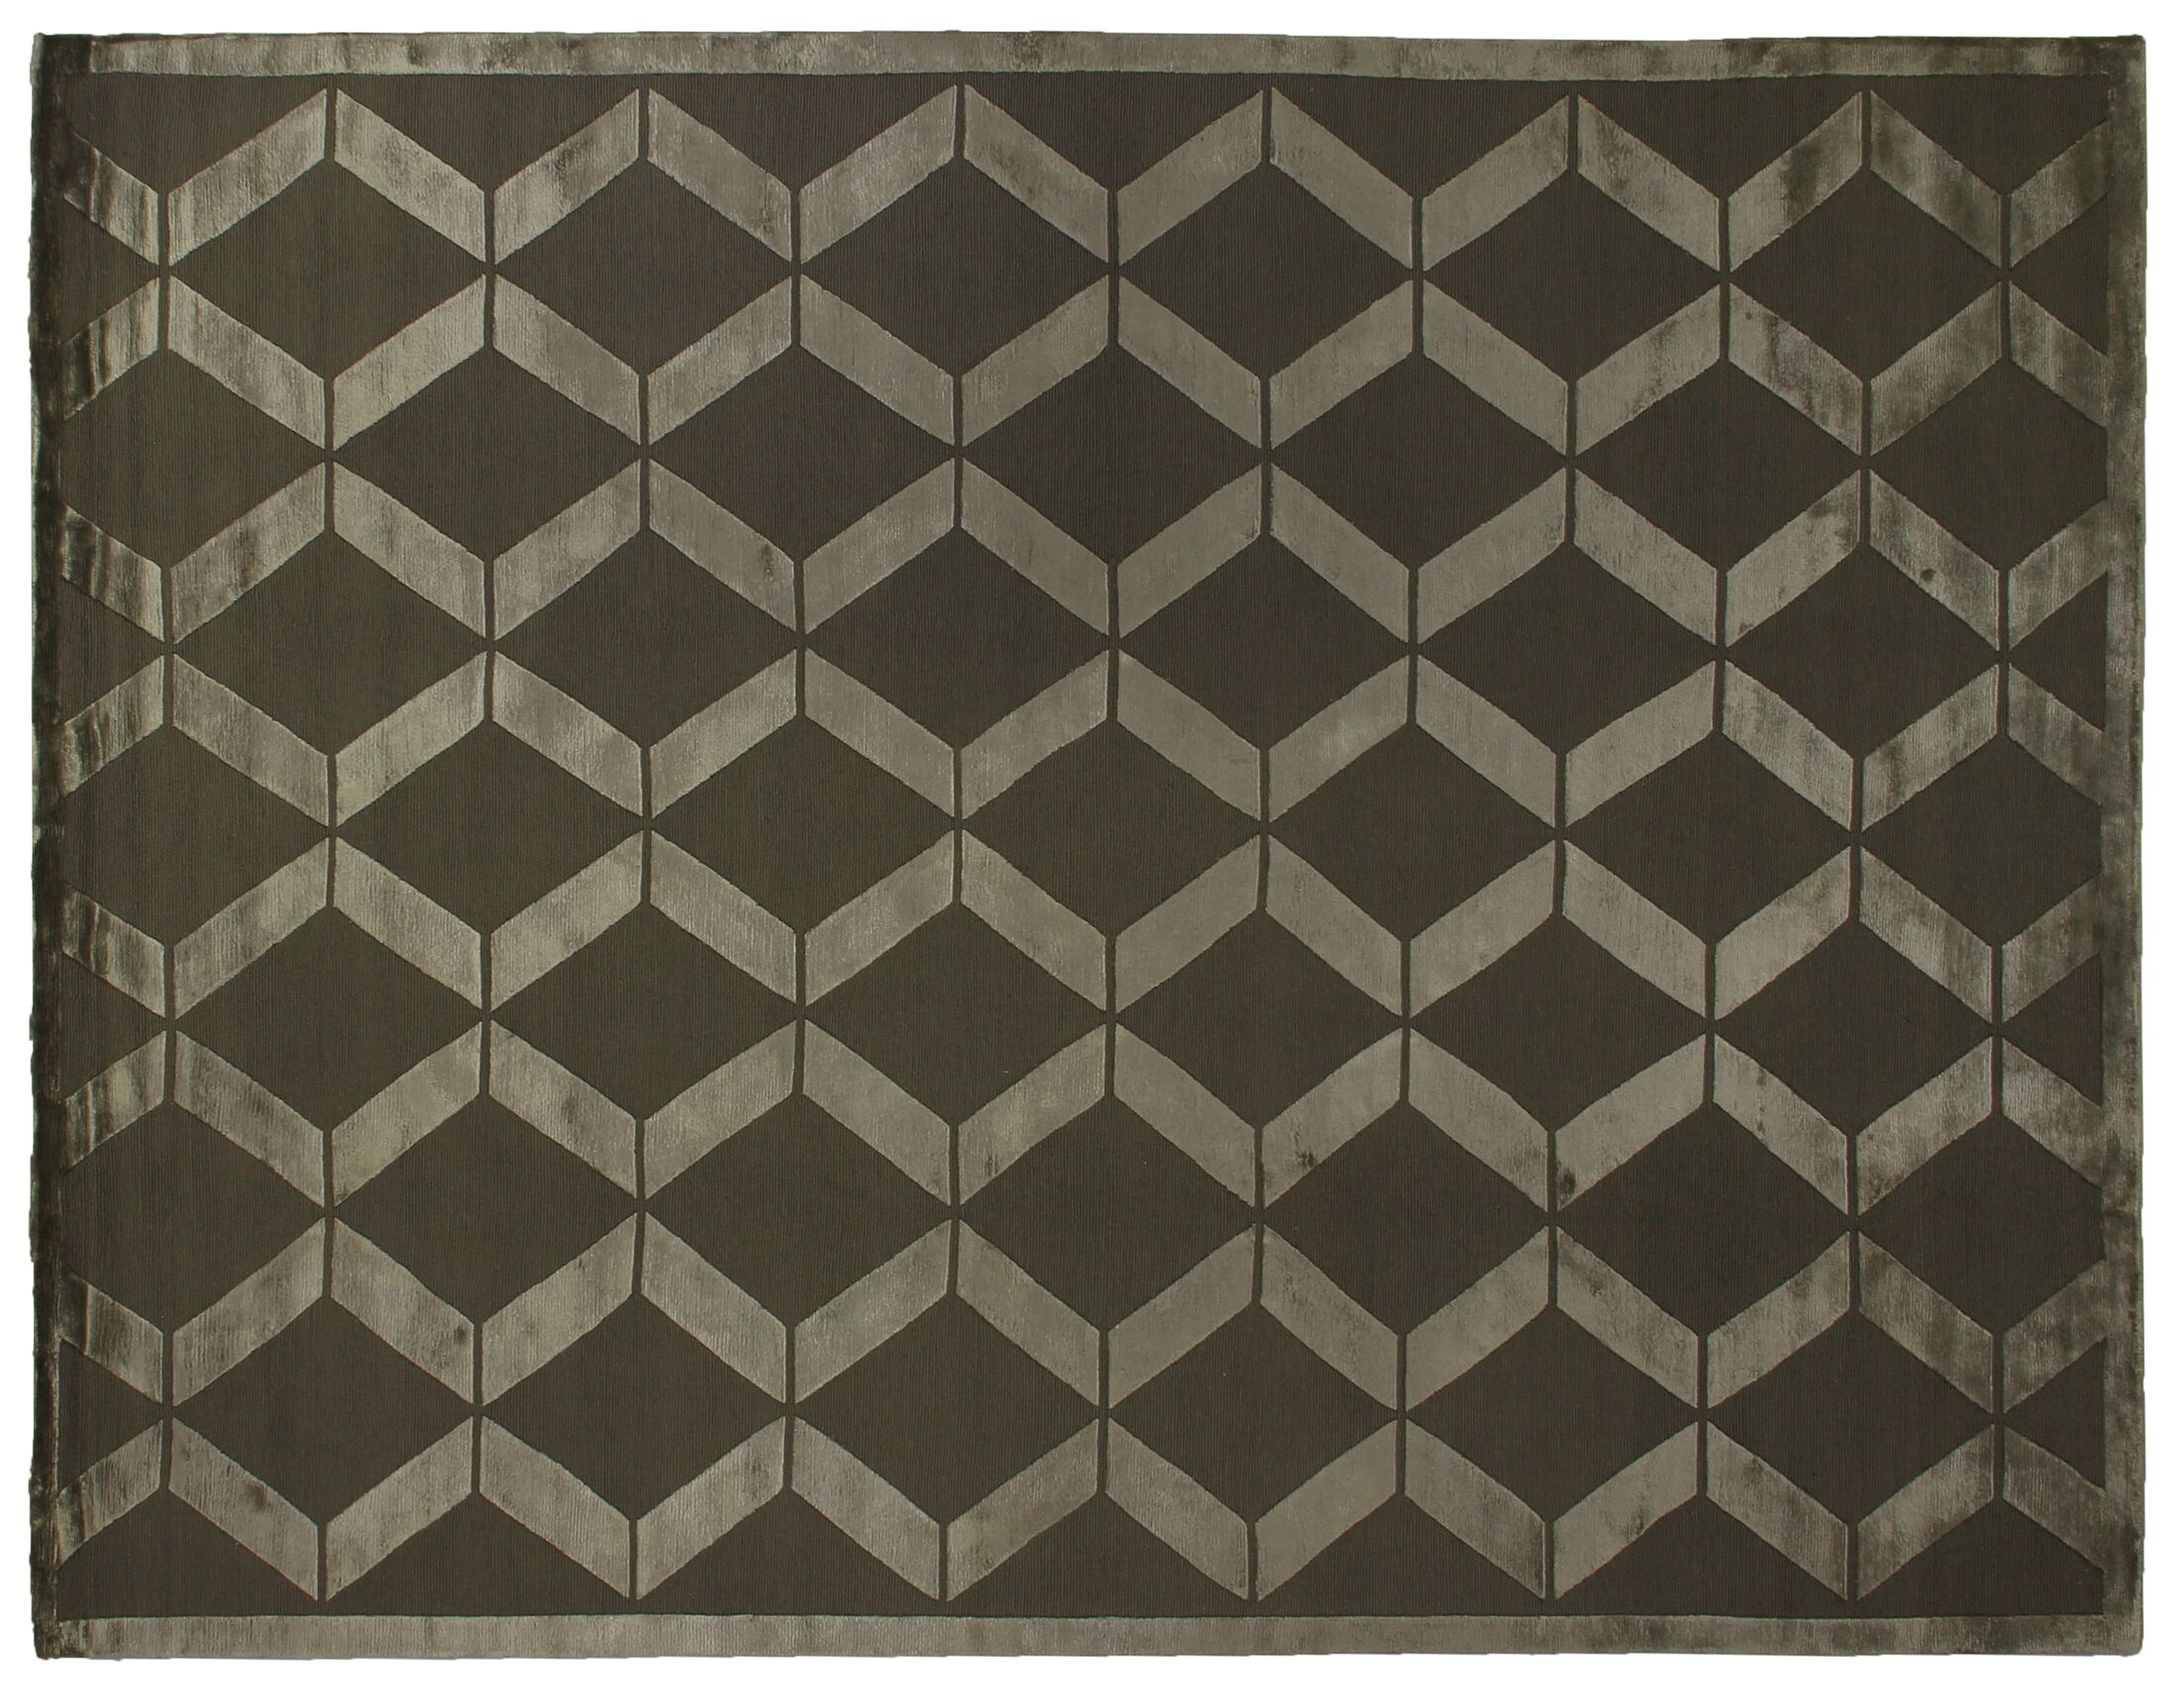 Hand-Knotted Wool/Silk Khaki/Beige Area Rug Rug Size: Rectangle 10' x 14'